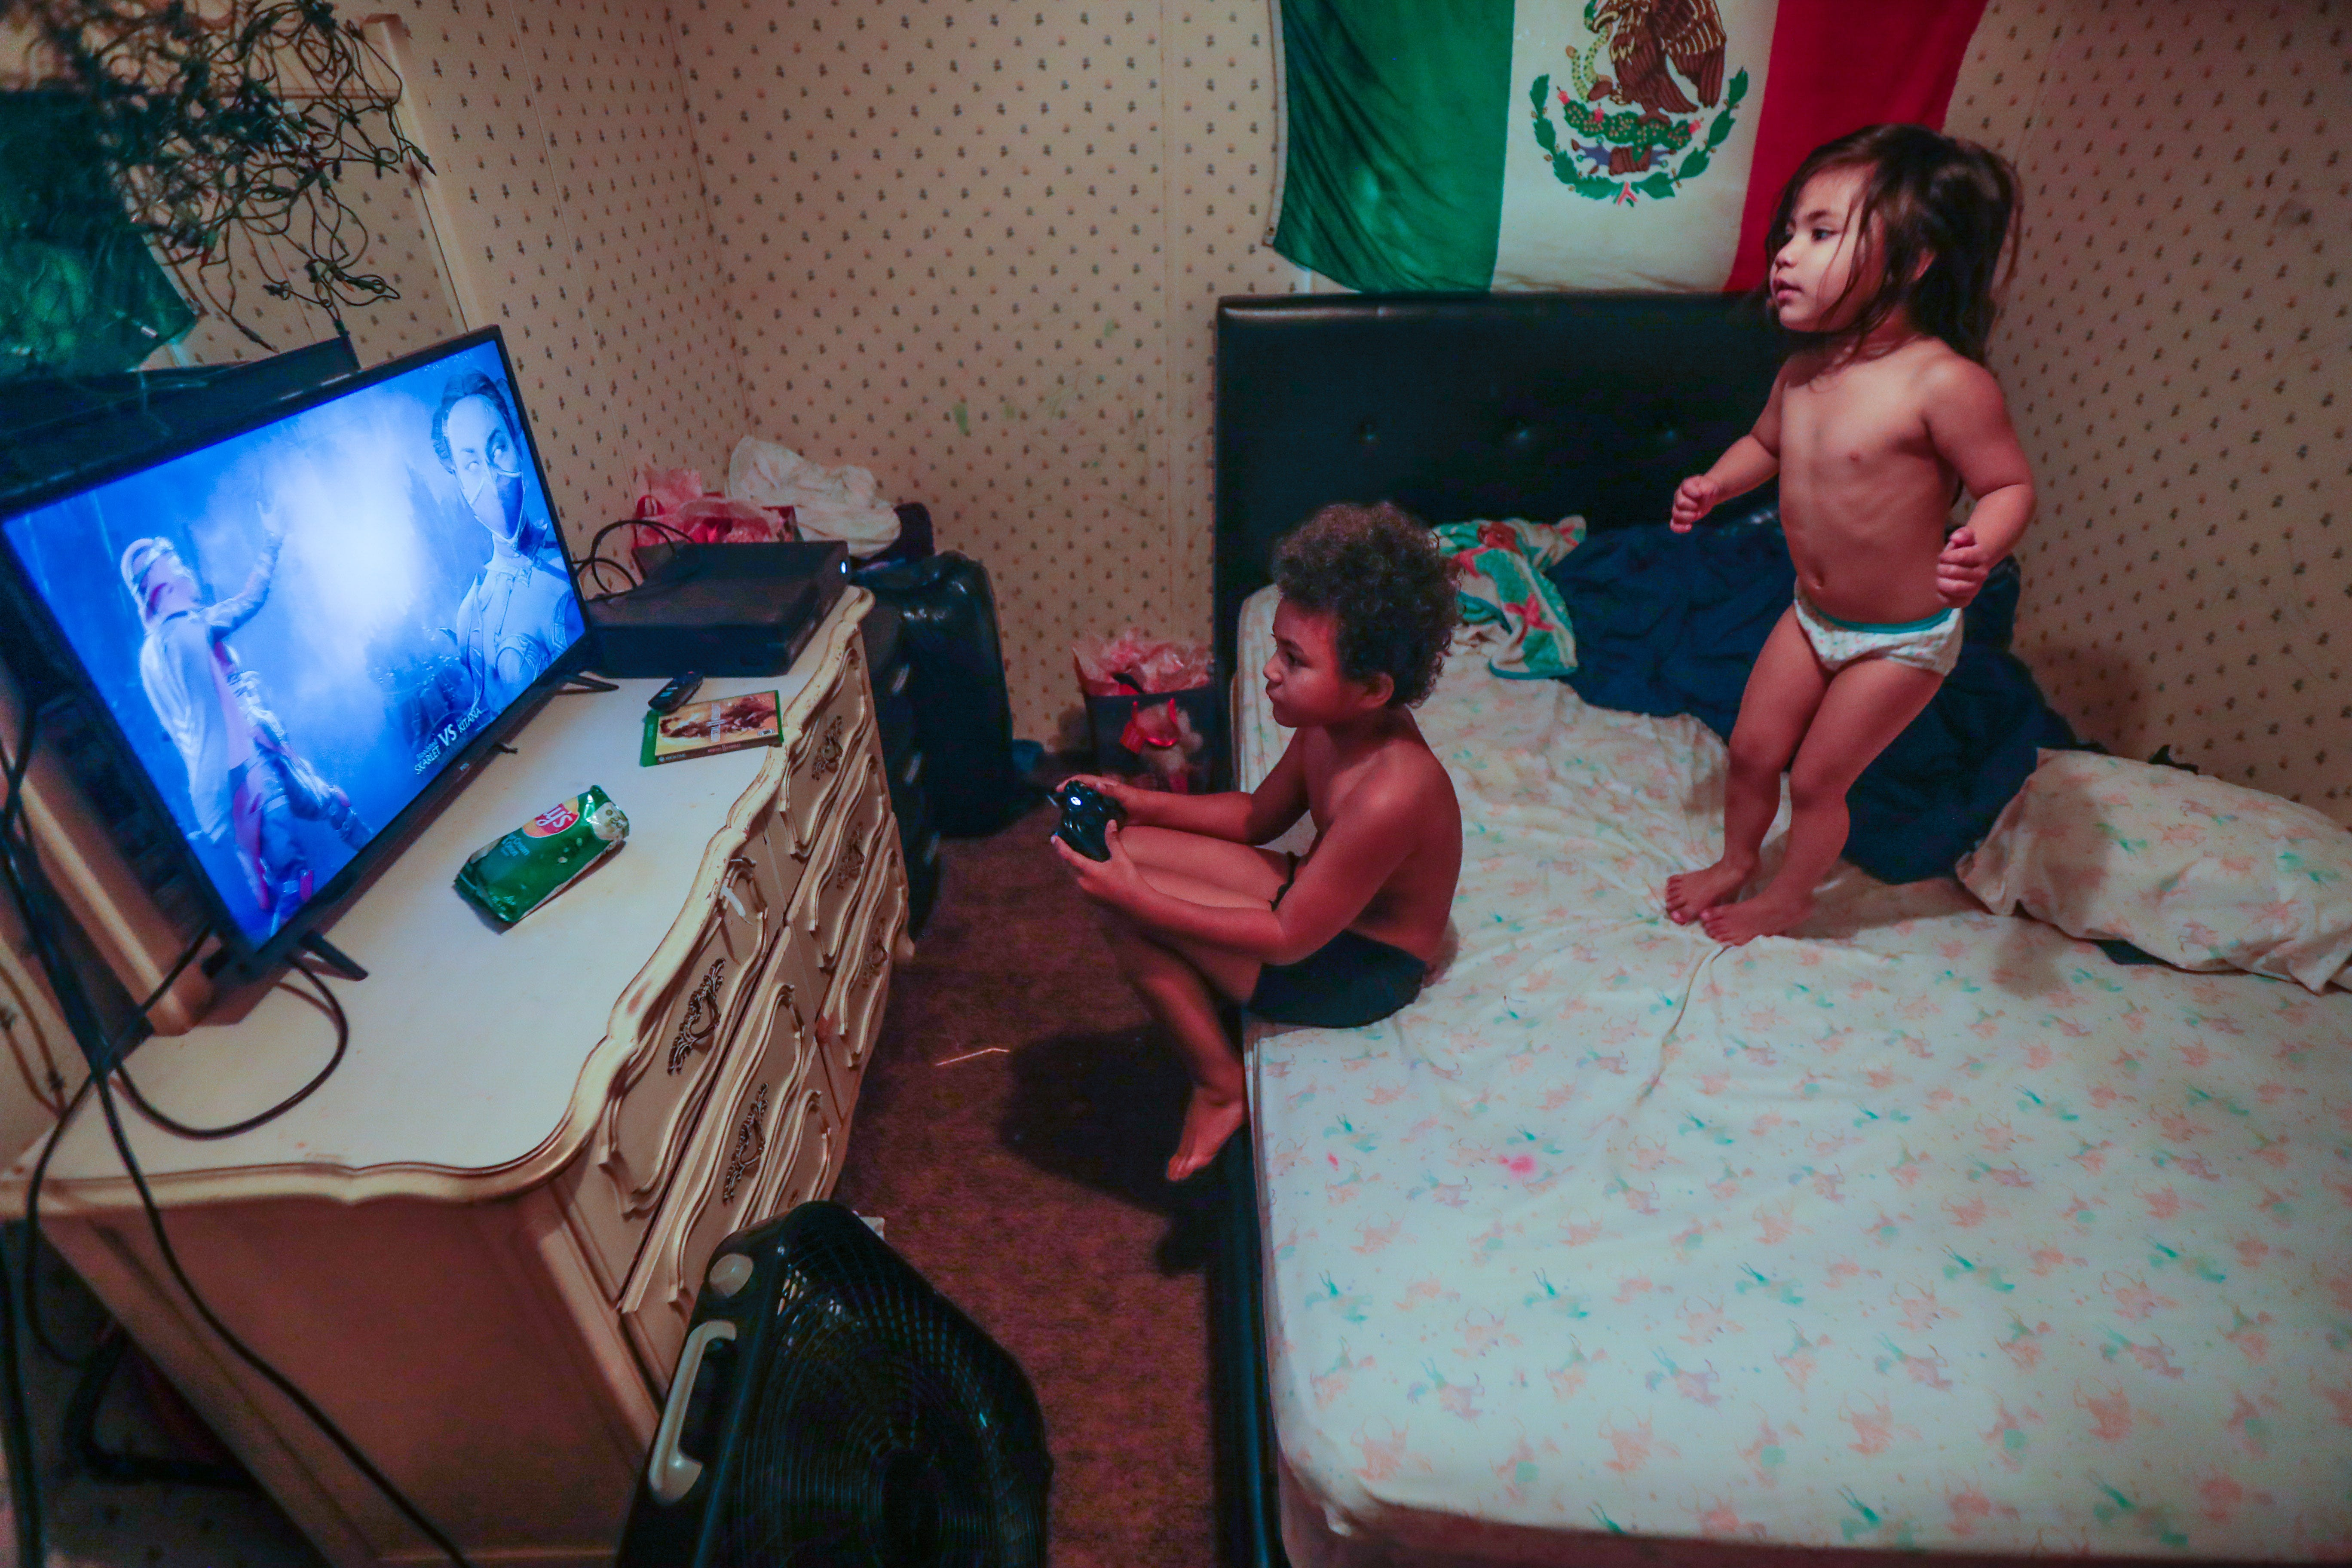 Victoria, 3, jumps on her mom's bed while her brother Romeo, 8, plays video games on his Xbox. The siblings live with their mom, her younger sister, and their mom's husband.